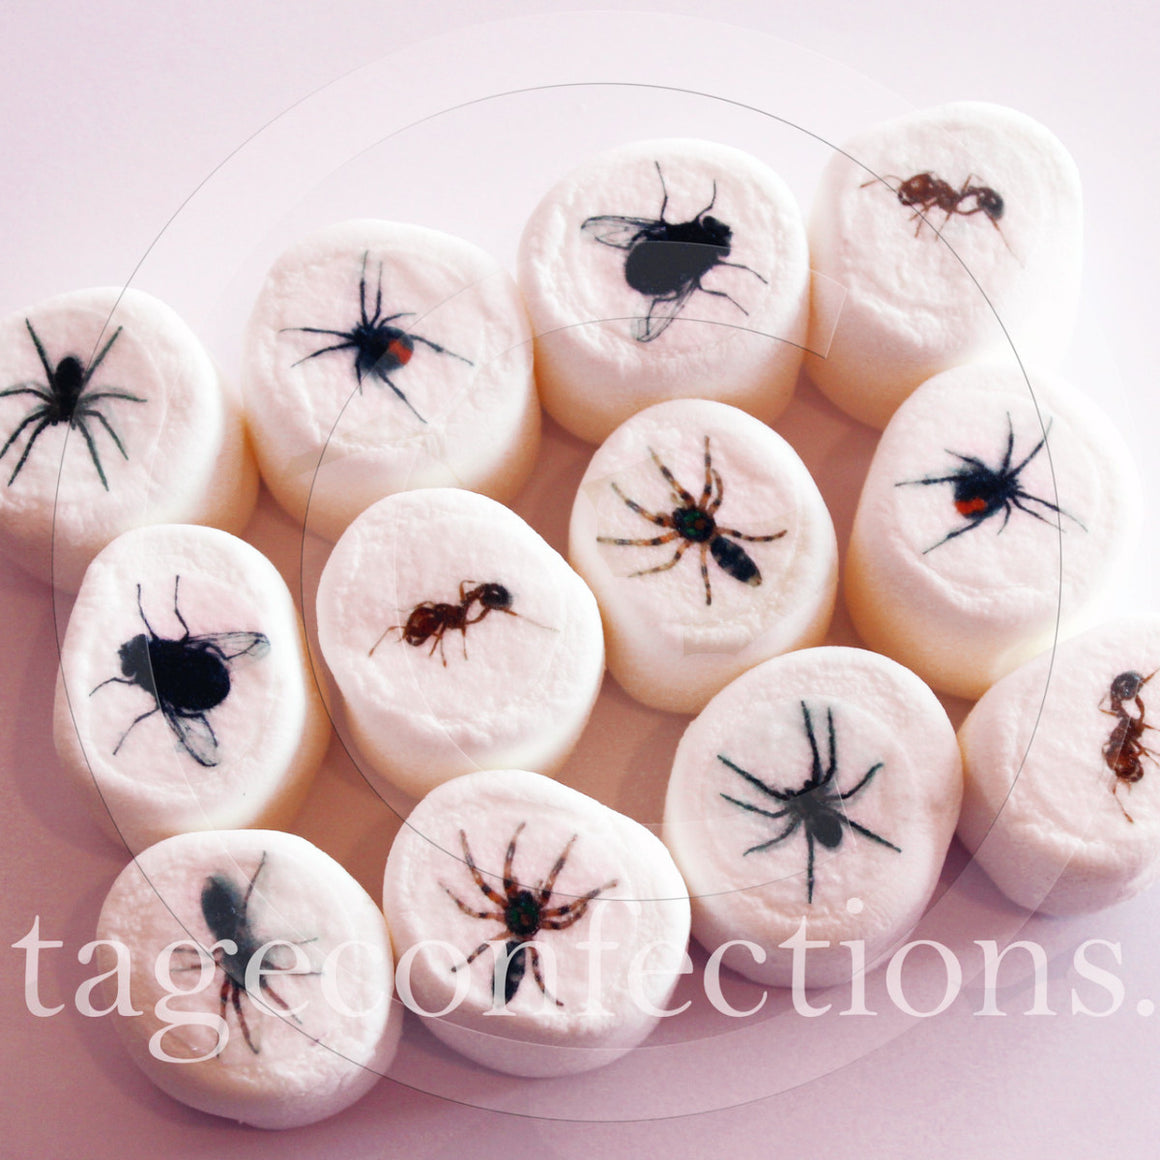 Creepy bugs and arachnids edible art marshmallows by Want Candy!